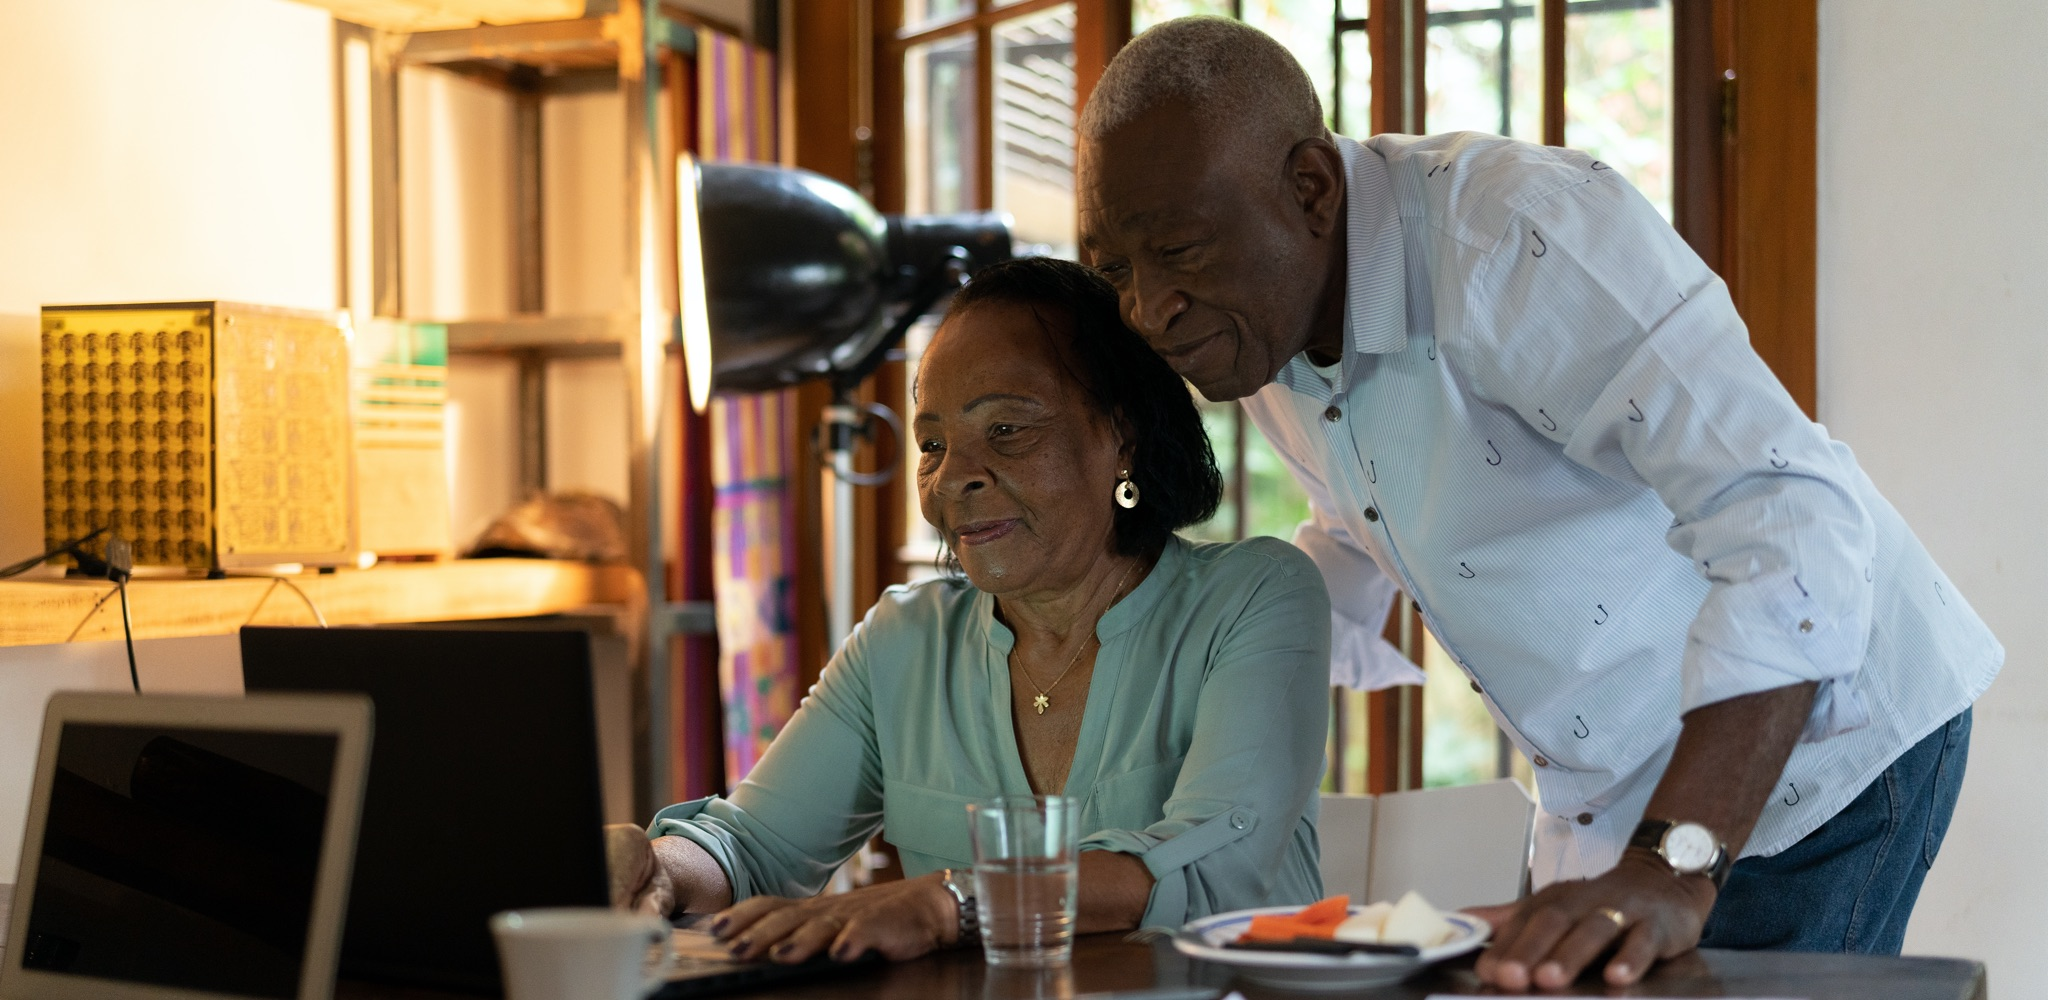 Senior African-American couple looking at computer.